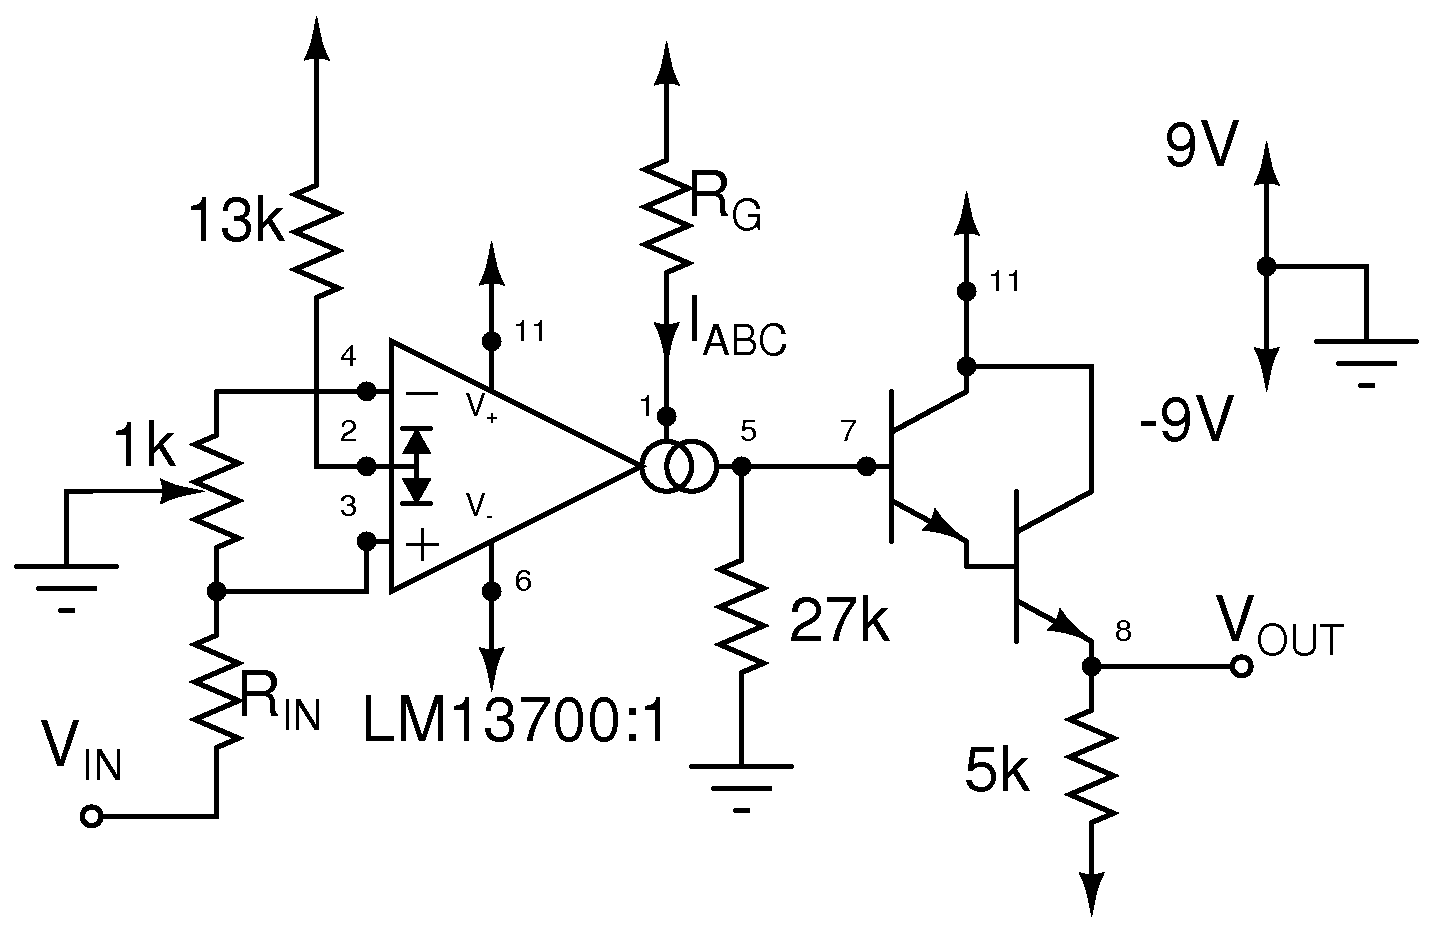 Electronics Evolution Vca S And Pcb S